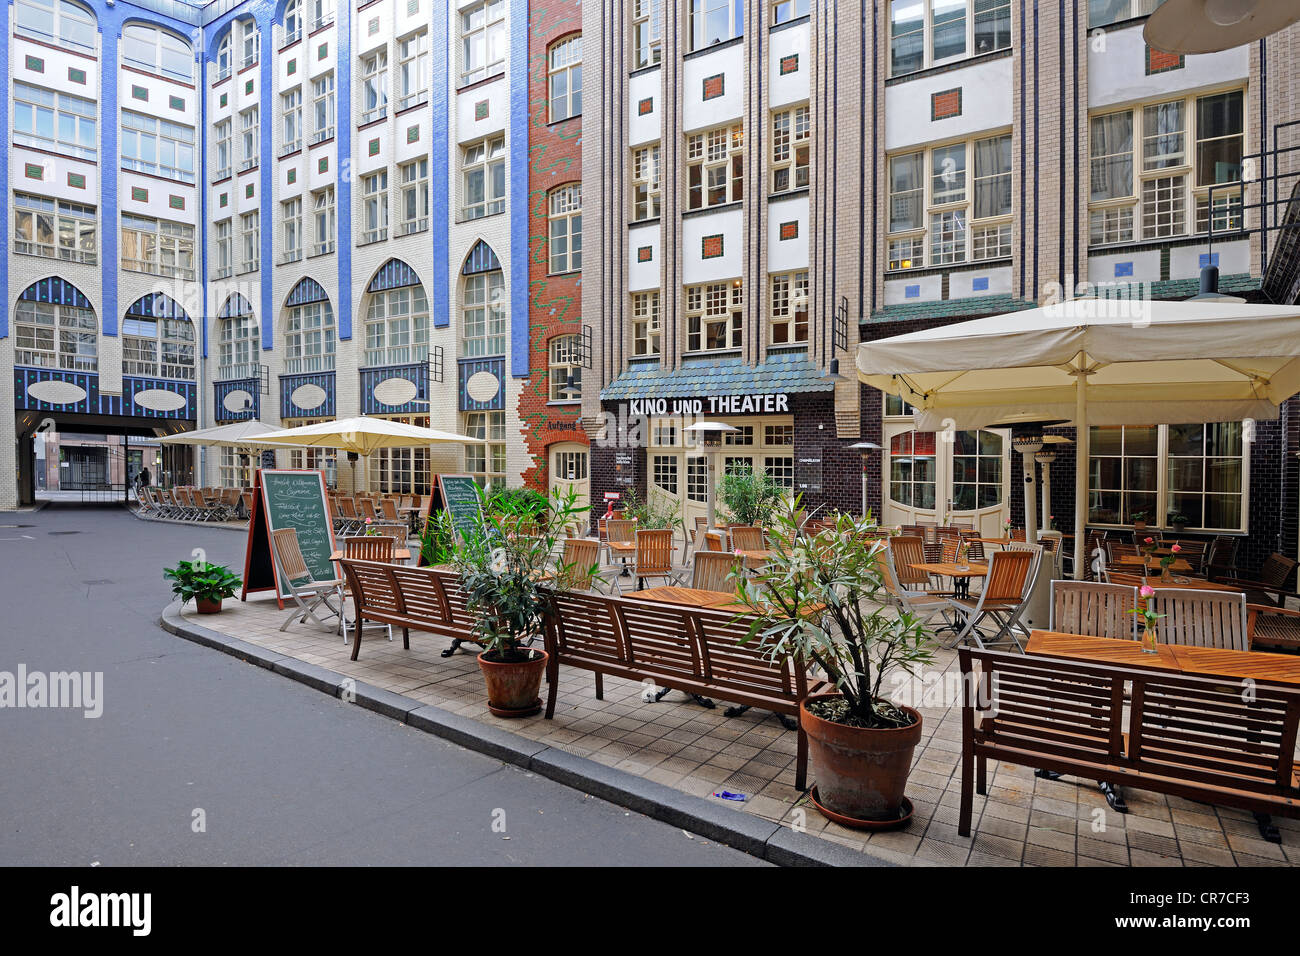 Hackesche Hoefe courtyards, catering, accommodation, culture, commerce and life, Berlin, Germany, Europe - Stock Image